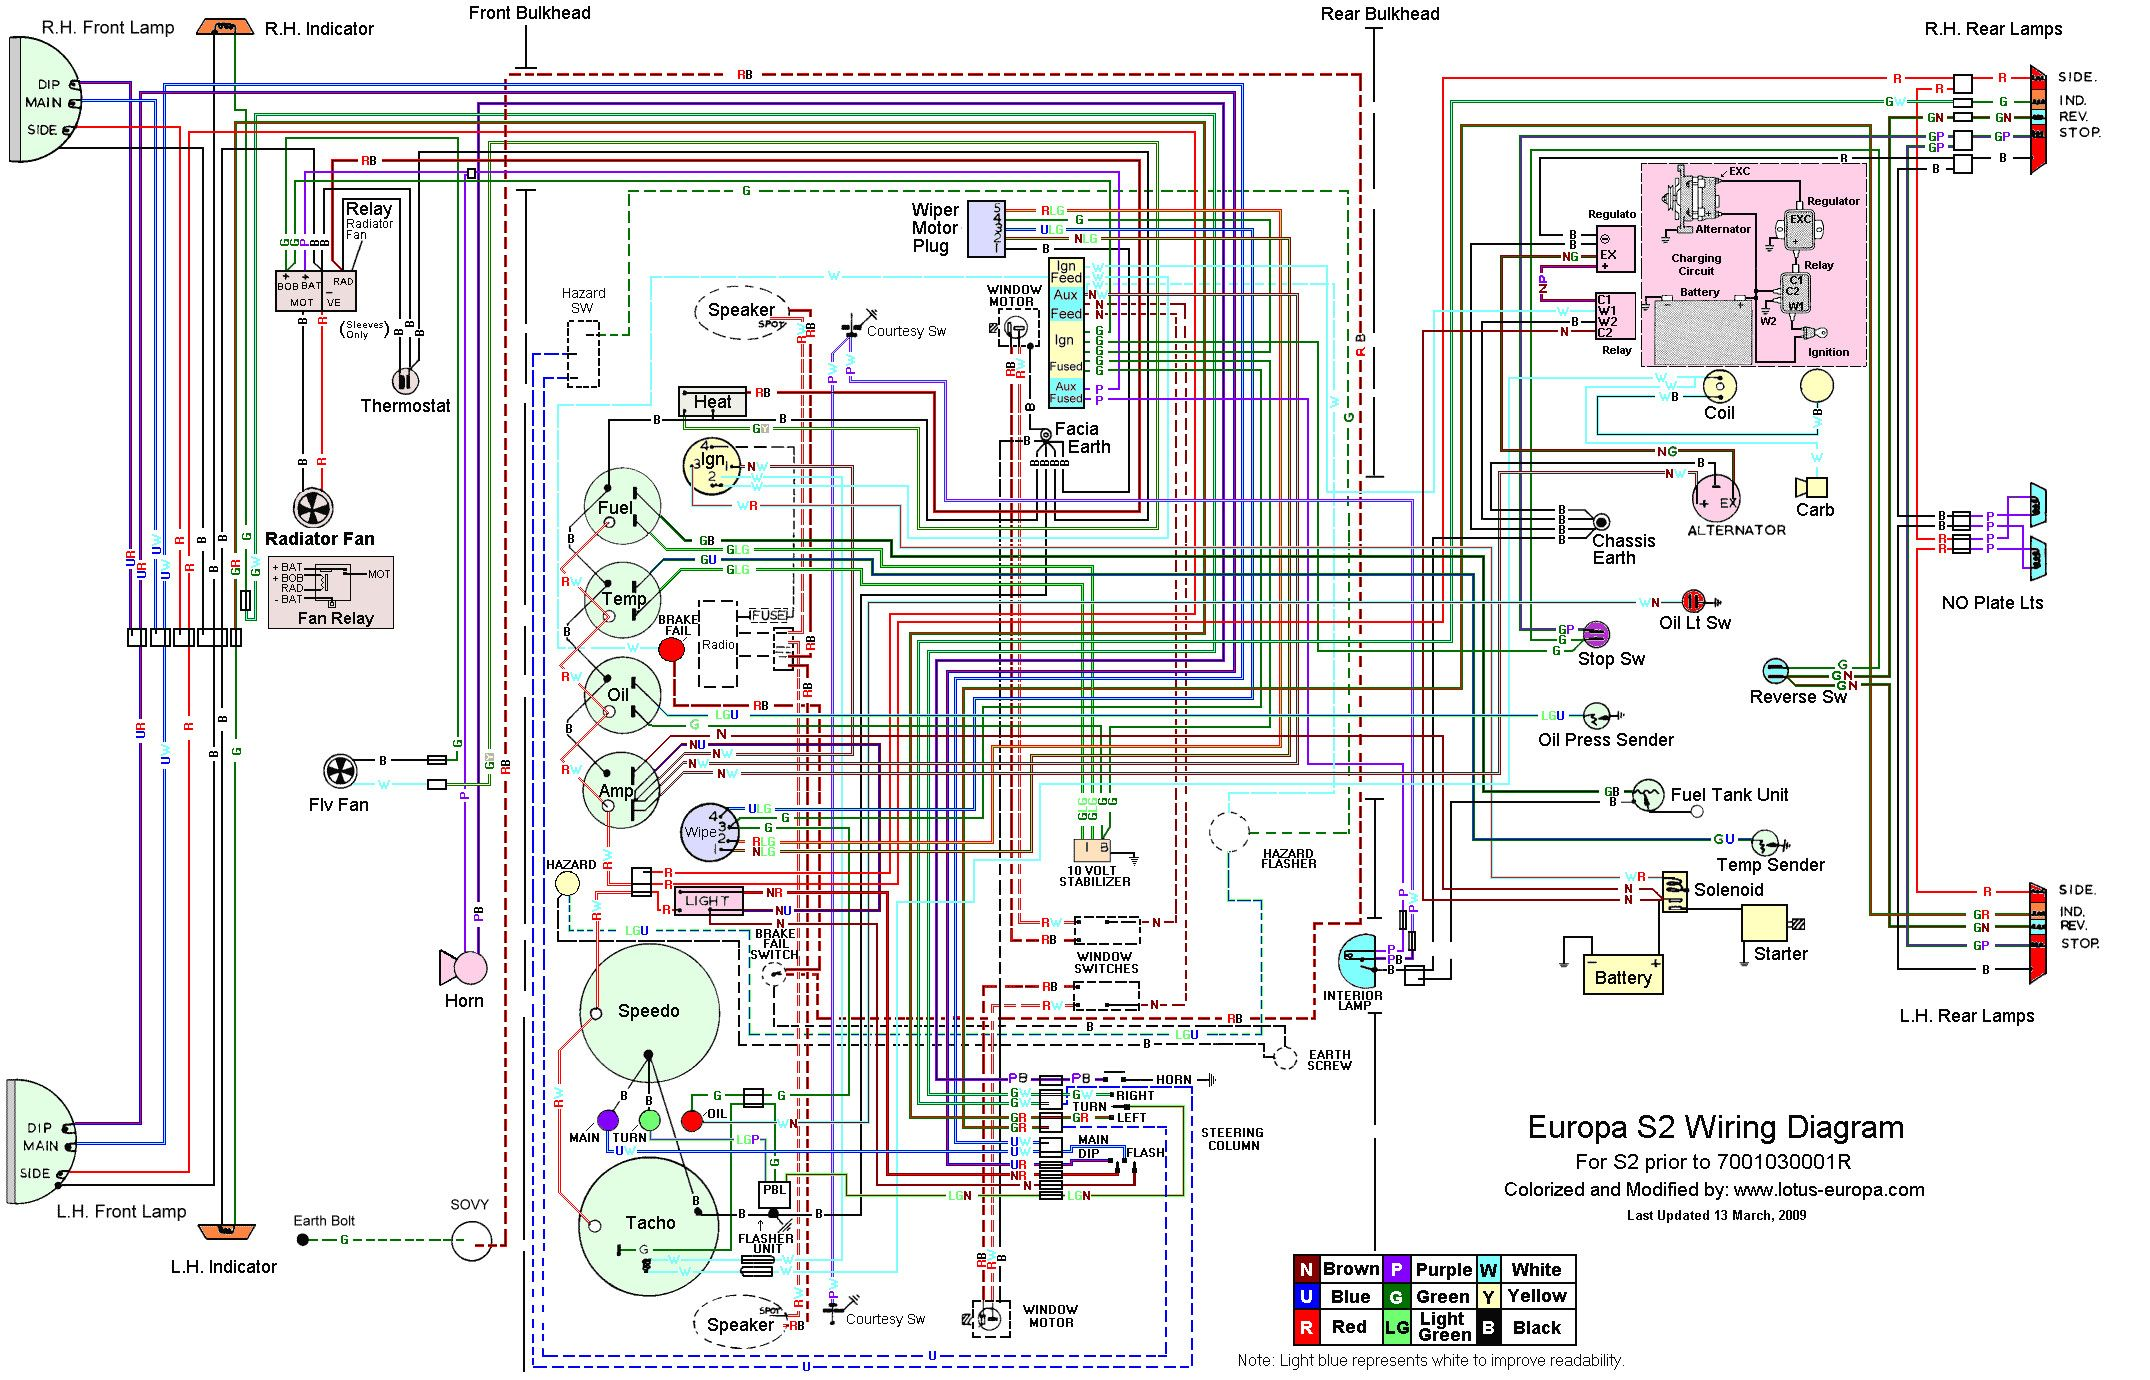 renault 5 wiring diagram free download - wiring diagram var mere-notice -  mere-notice.viblock.it  viblock.it